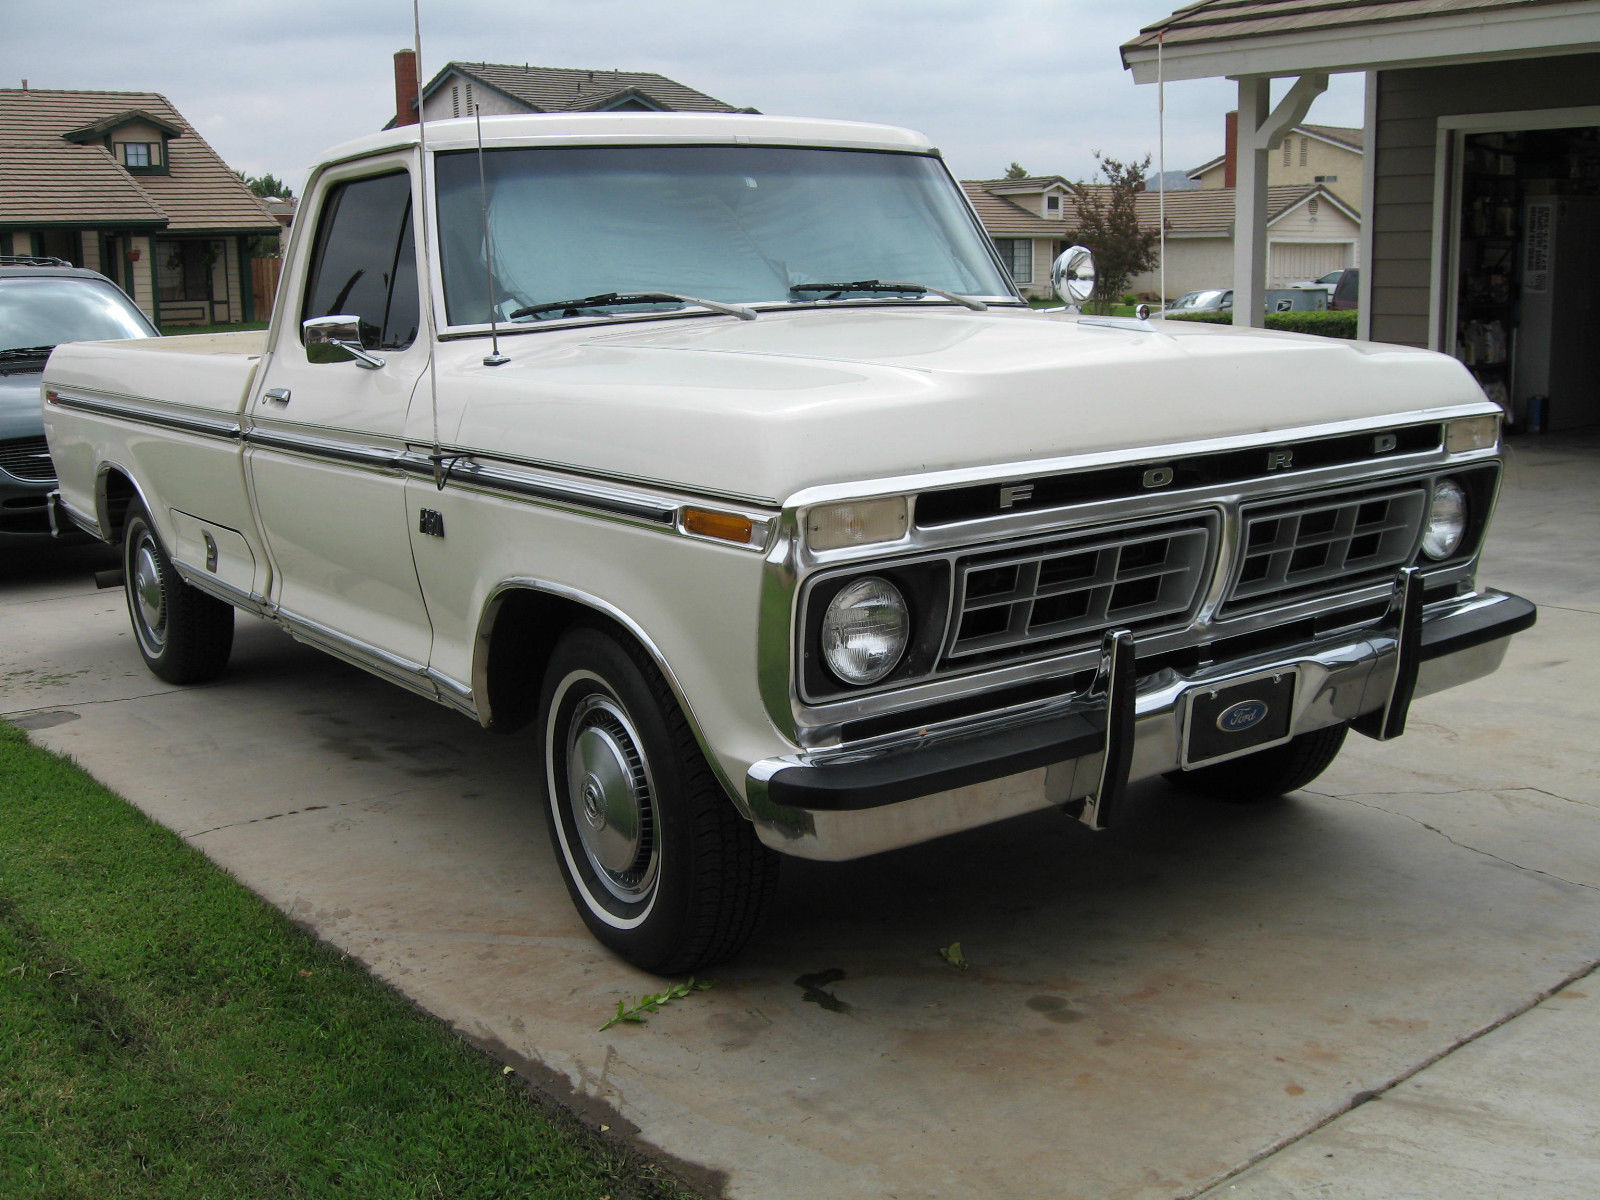 1976 f150 mint condition white wimbledon 460ci all. Black Bedroom Furniture Sets. Home Design Ideas